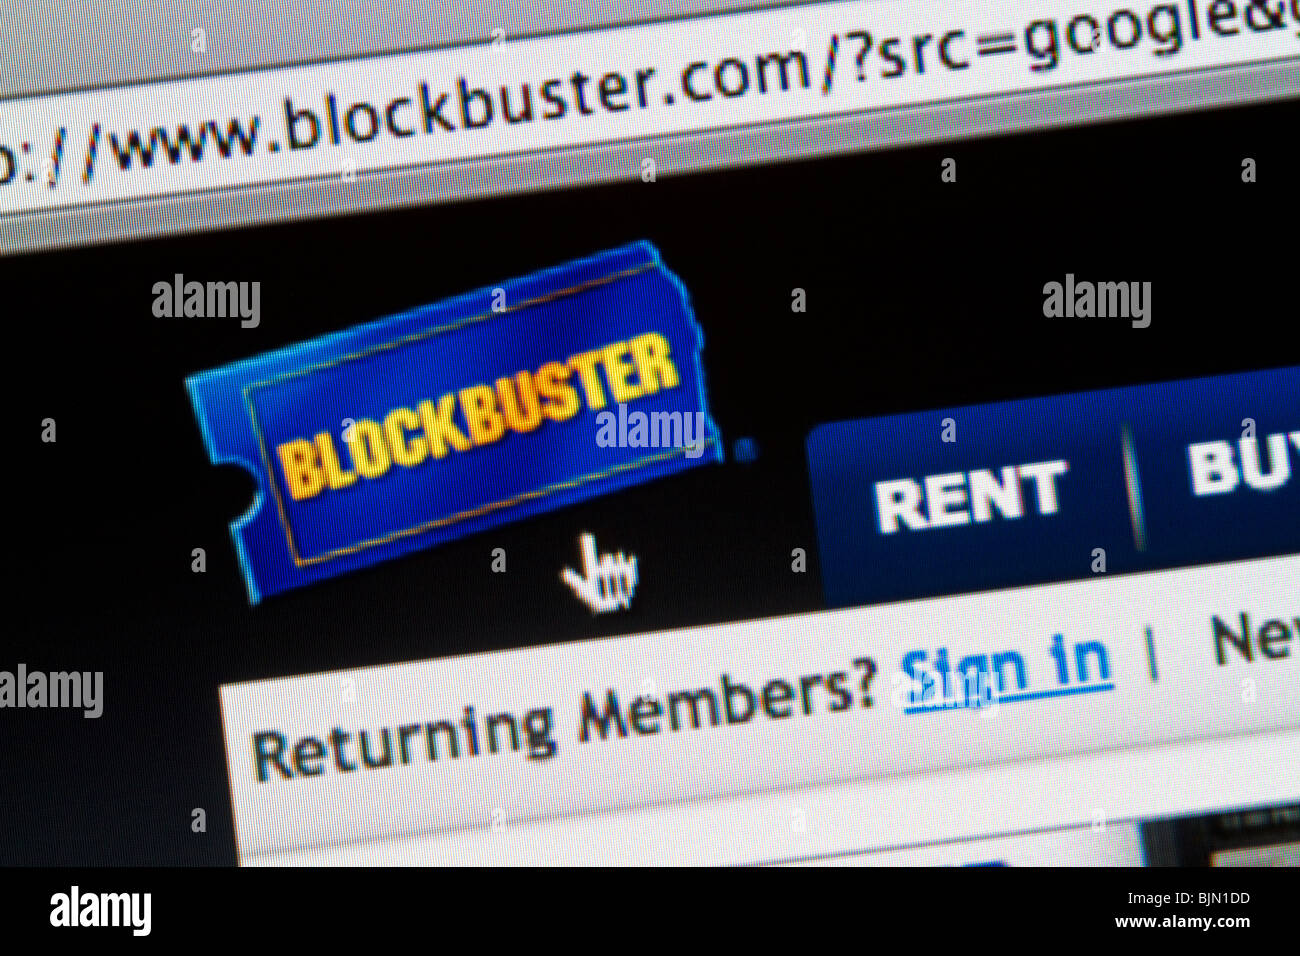 Le site en ligne pour le blockbuster video store. Blockbuster.com. Photo Stock